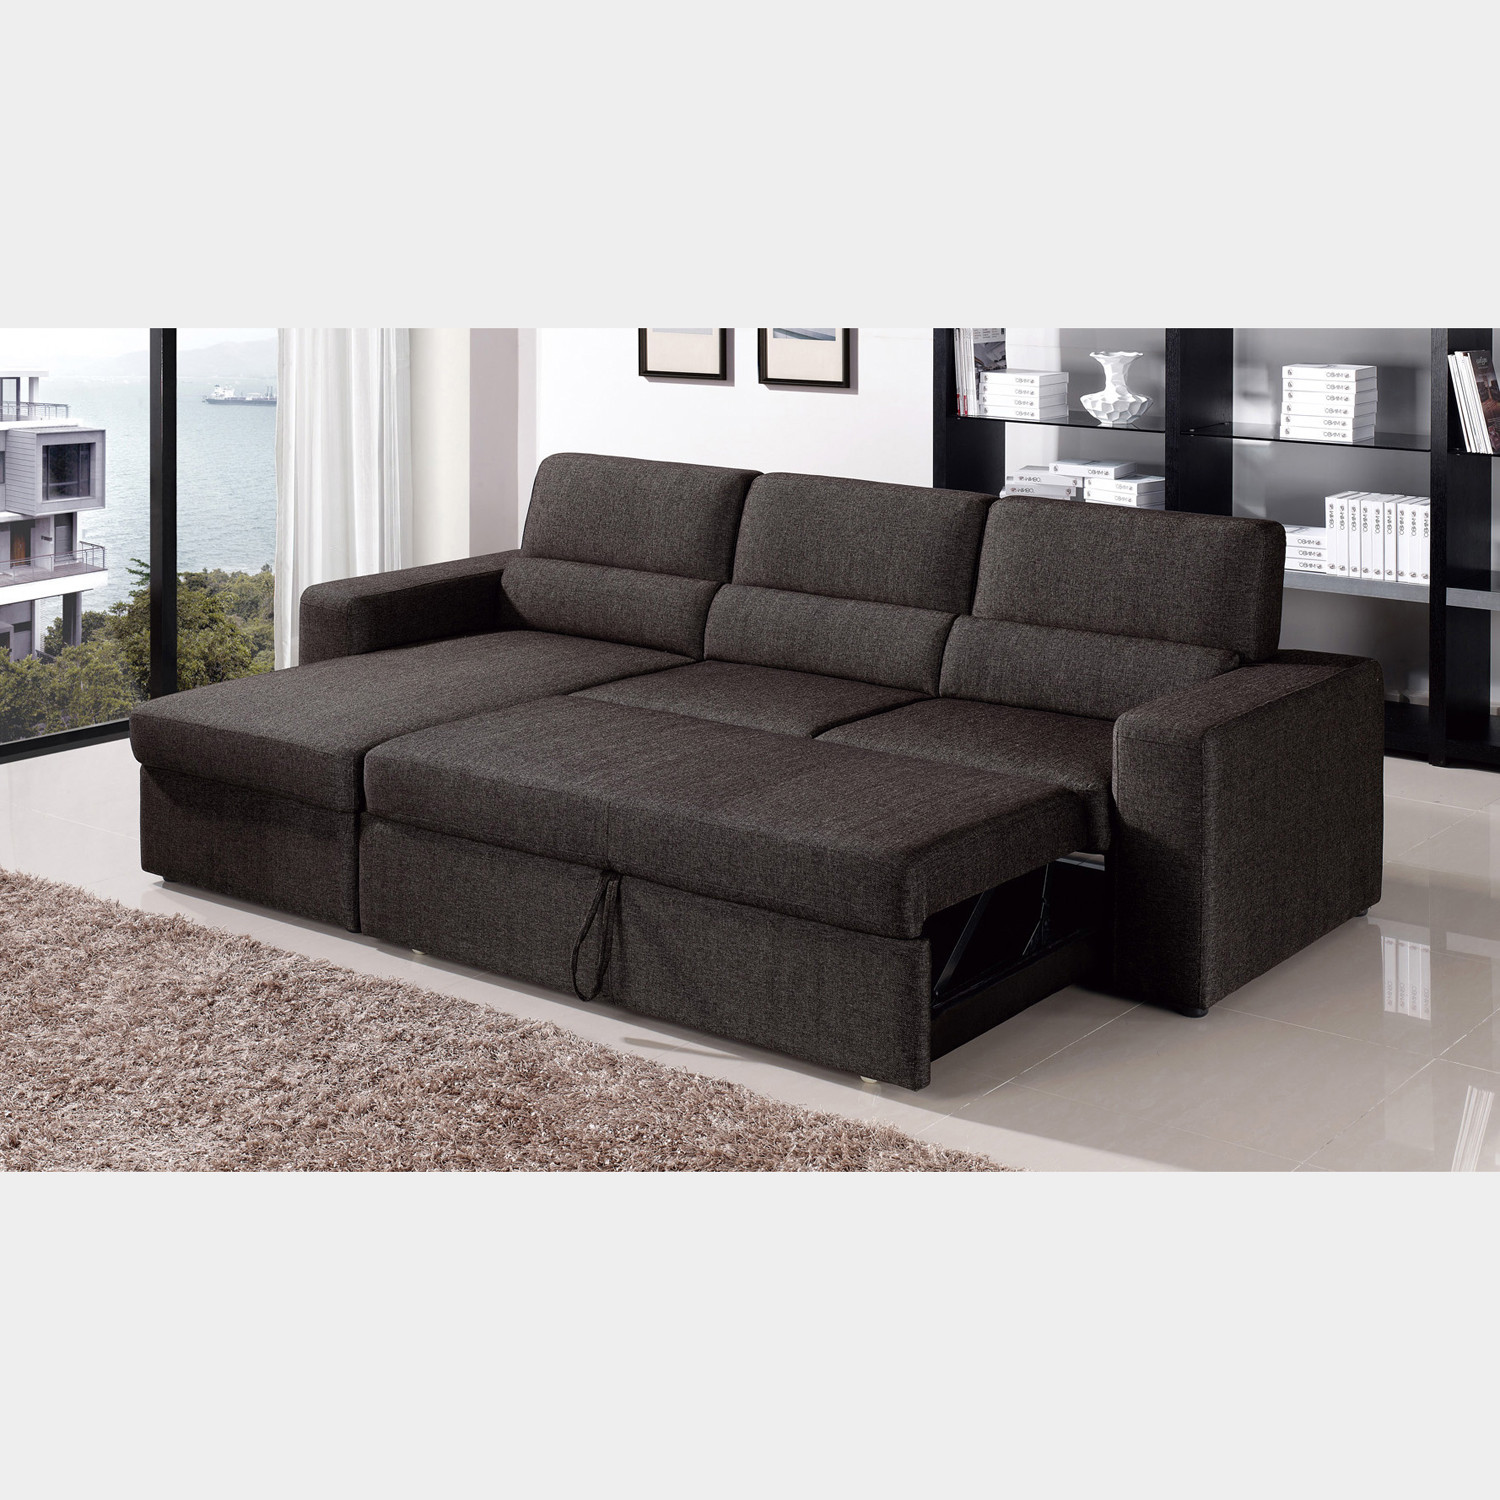 Clubber sleeper sectional left chaise black brown for Brown chaise sofa